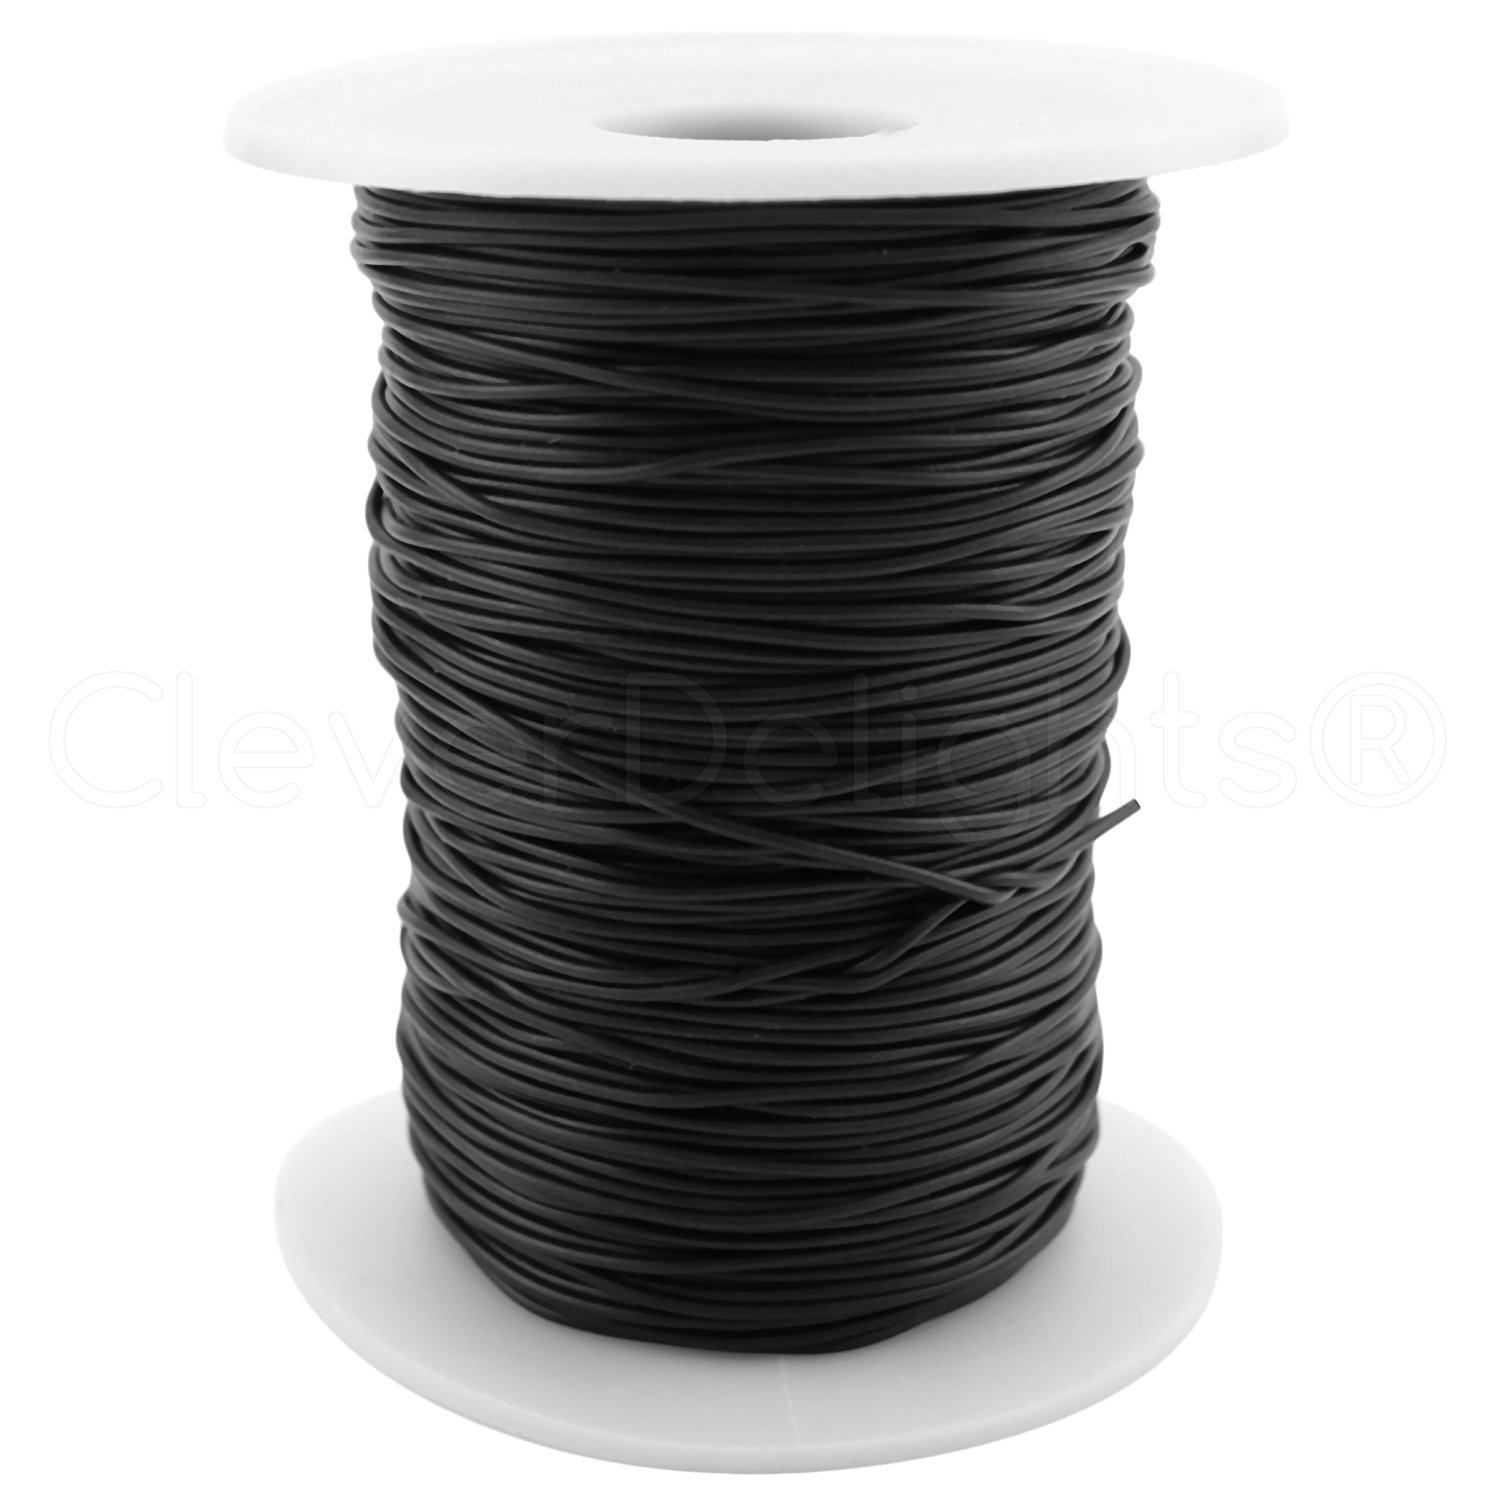 "CleverDelights Black Solid Rubber Cord - 300 Feet - 1mm (1/32"") Round"